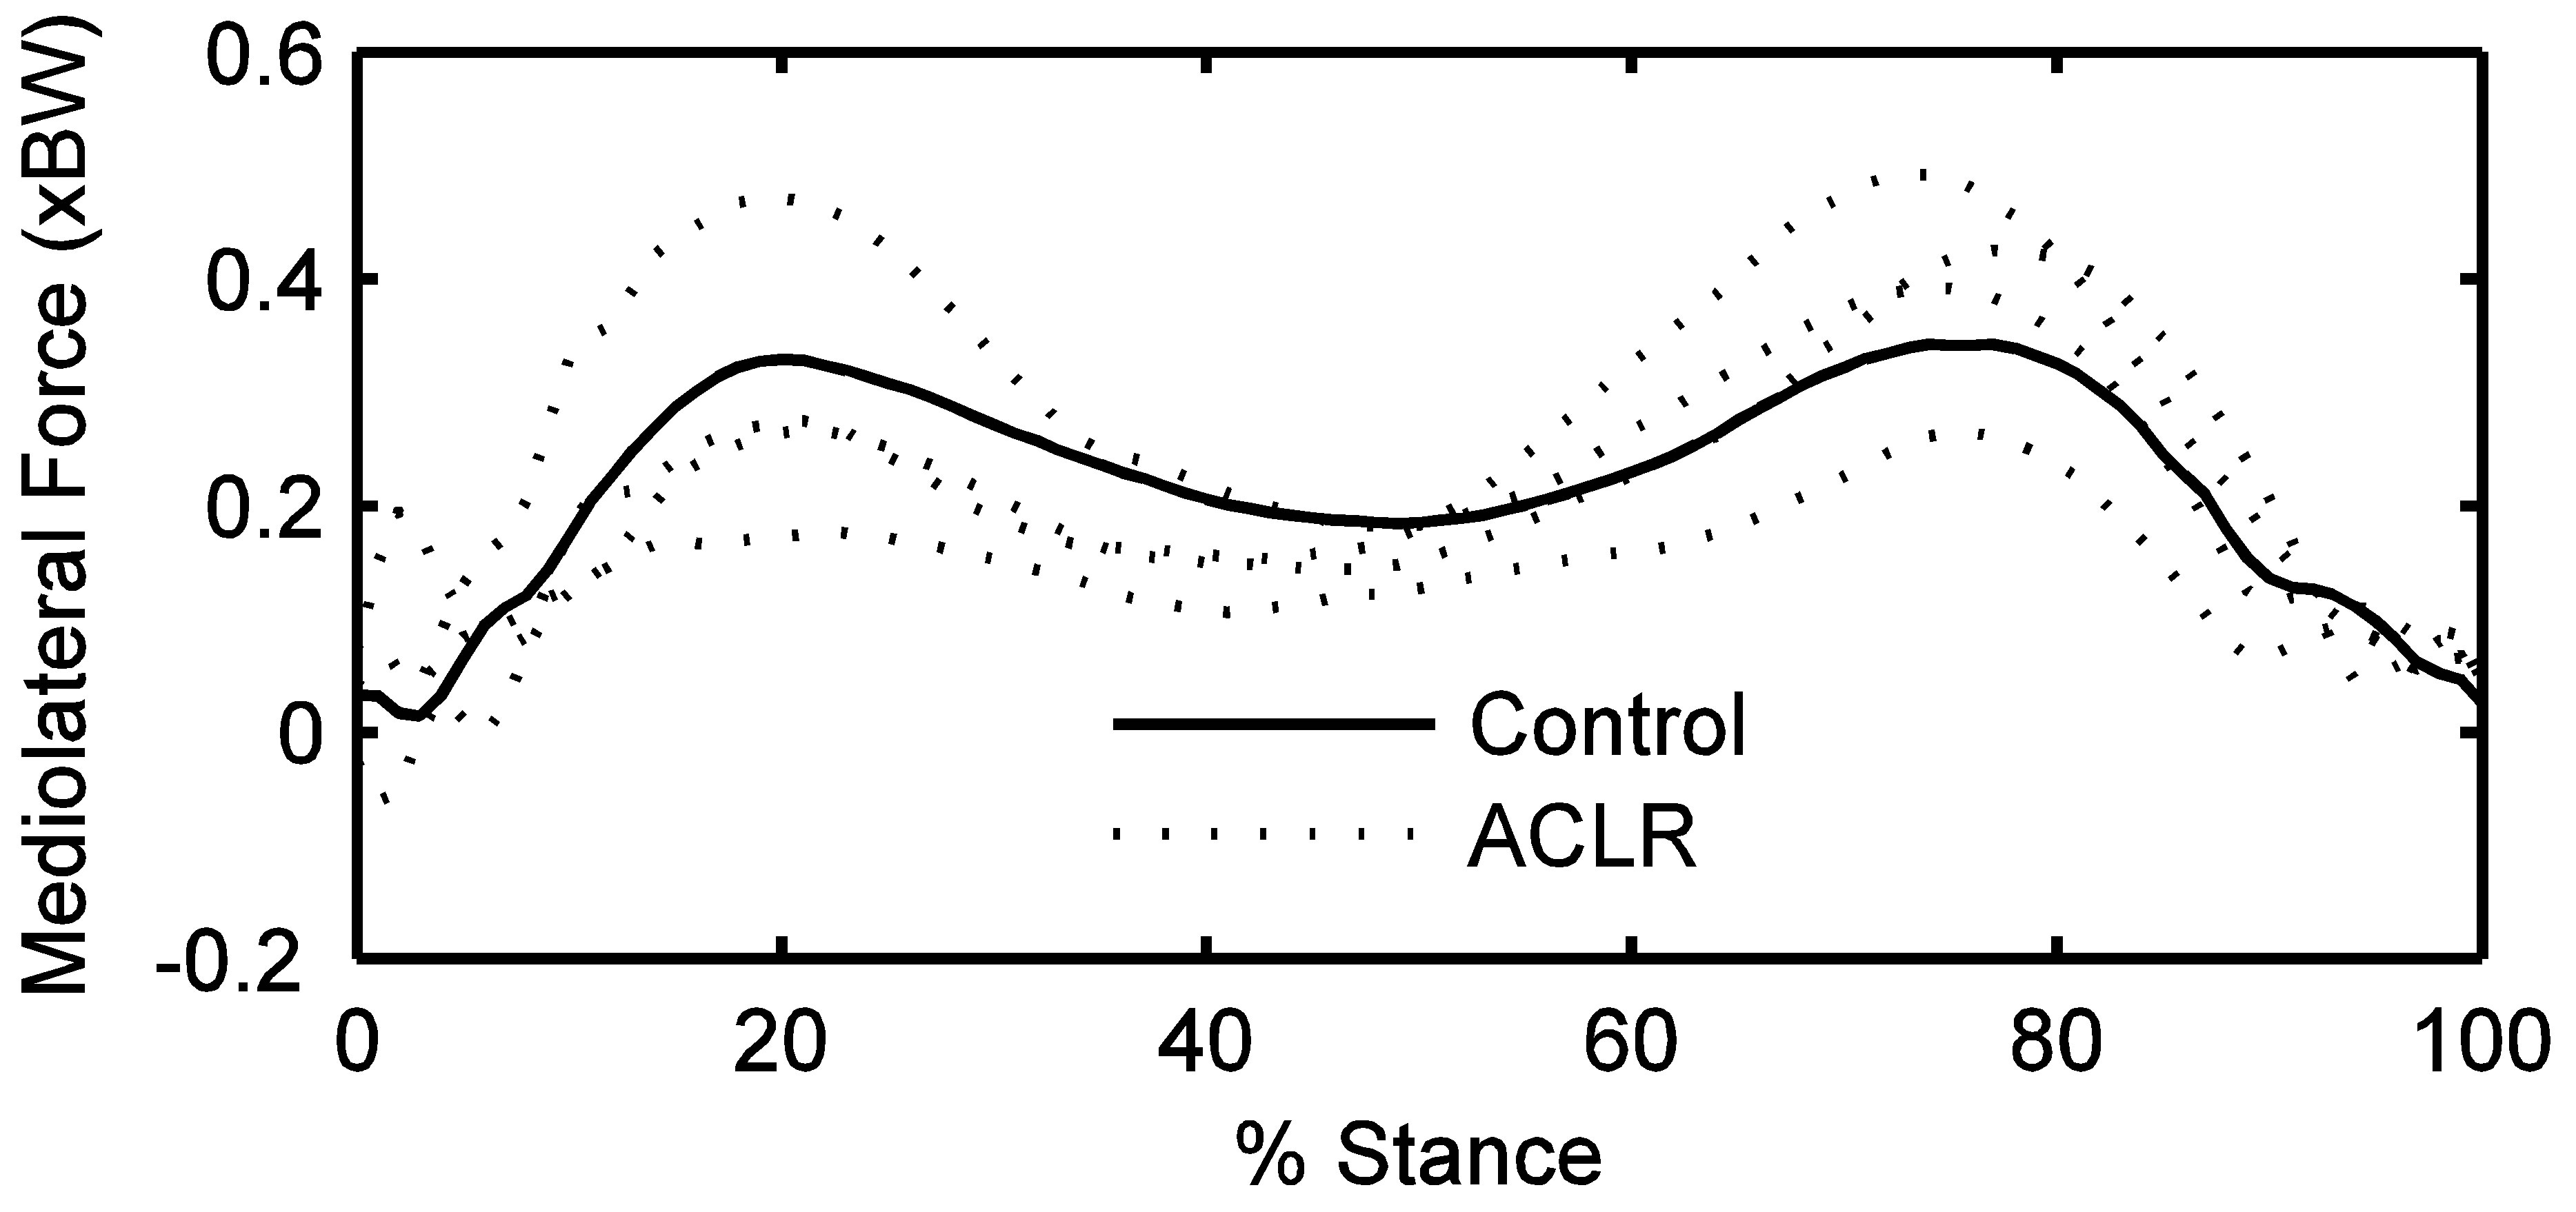 Tibiofemoral Joint Forces During The Stance Phase Of Gait